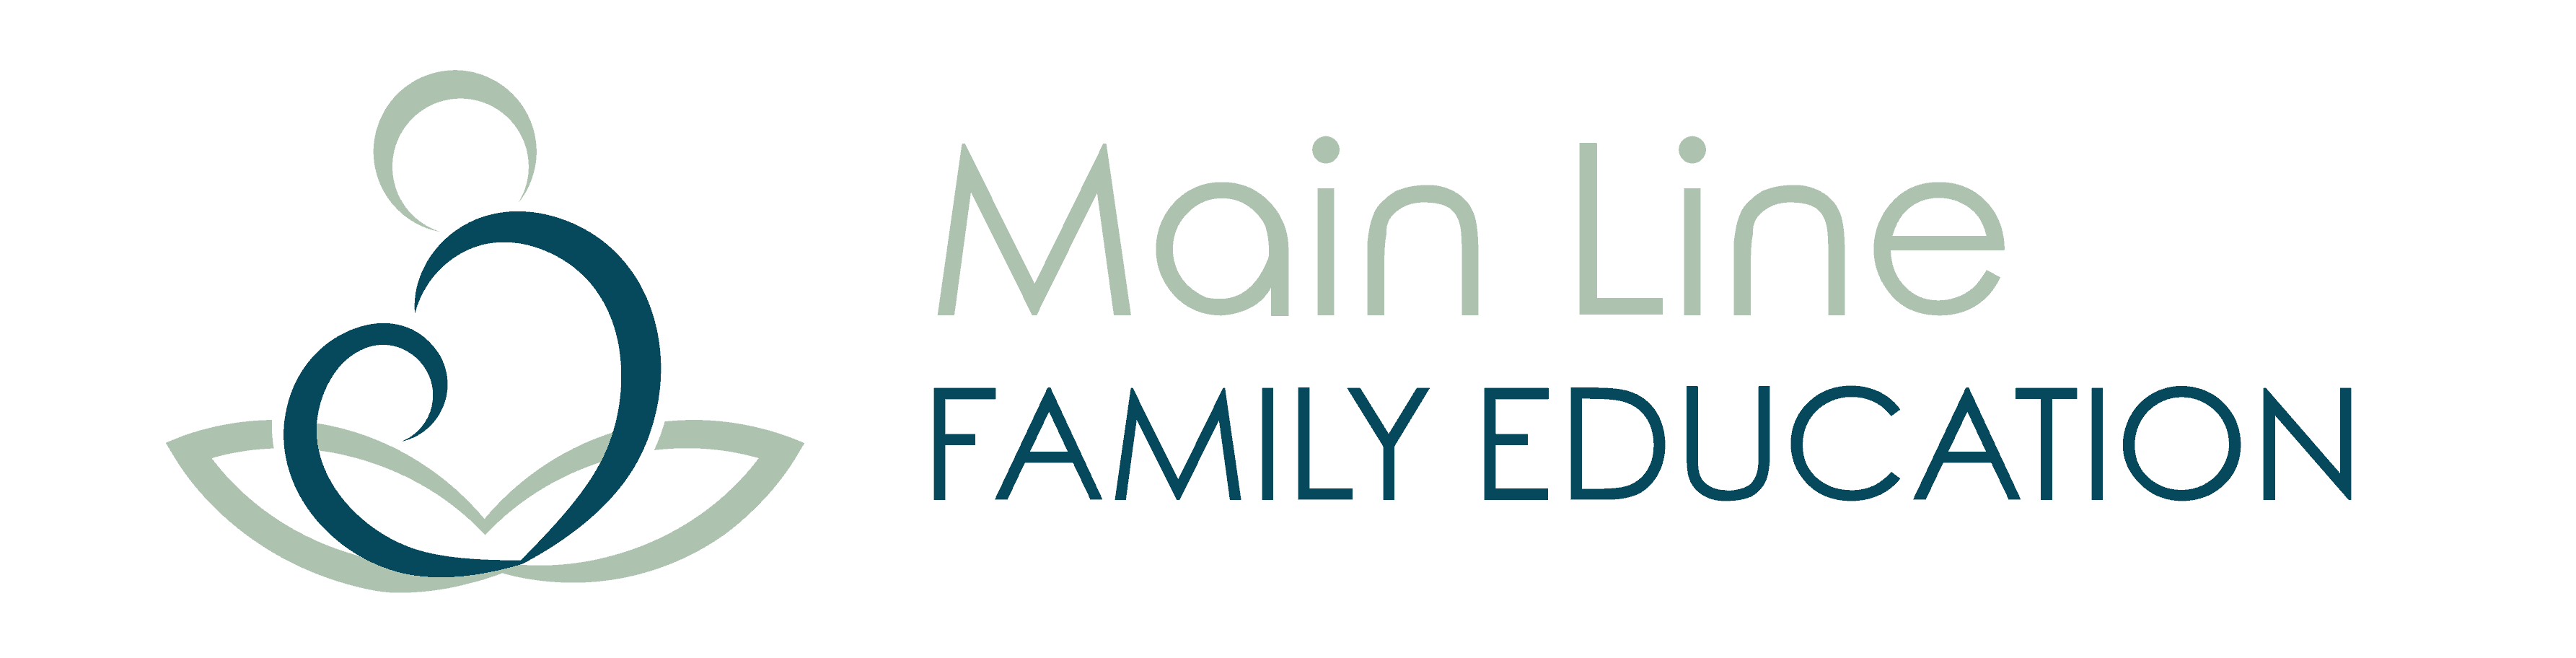 Main Line Family Education